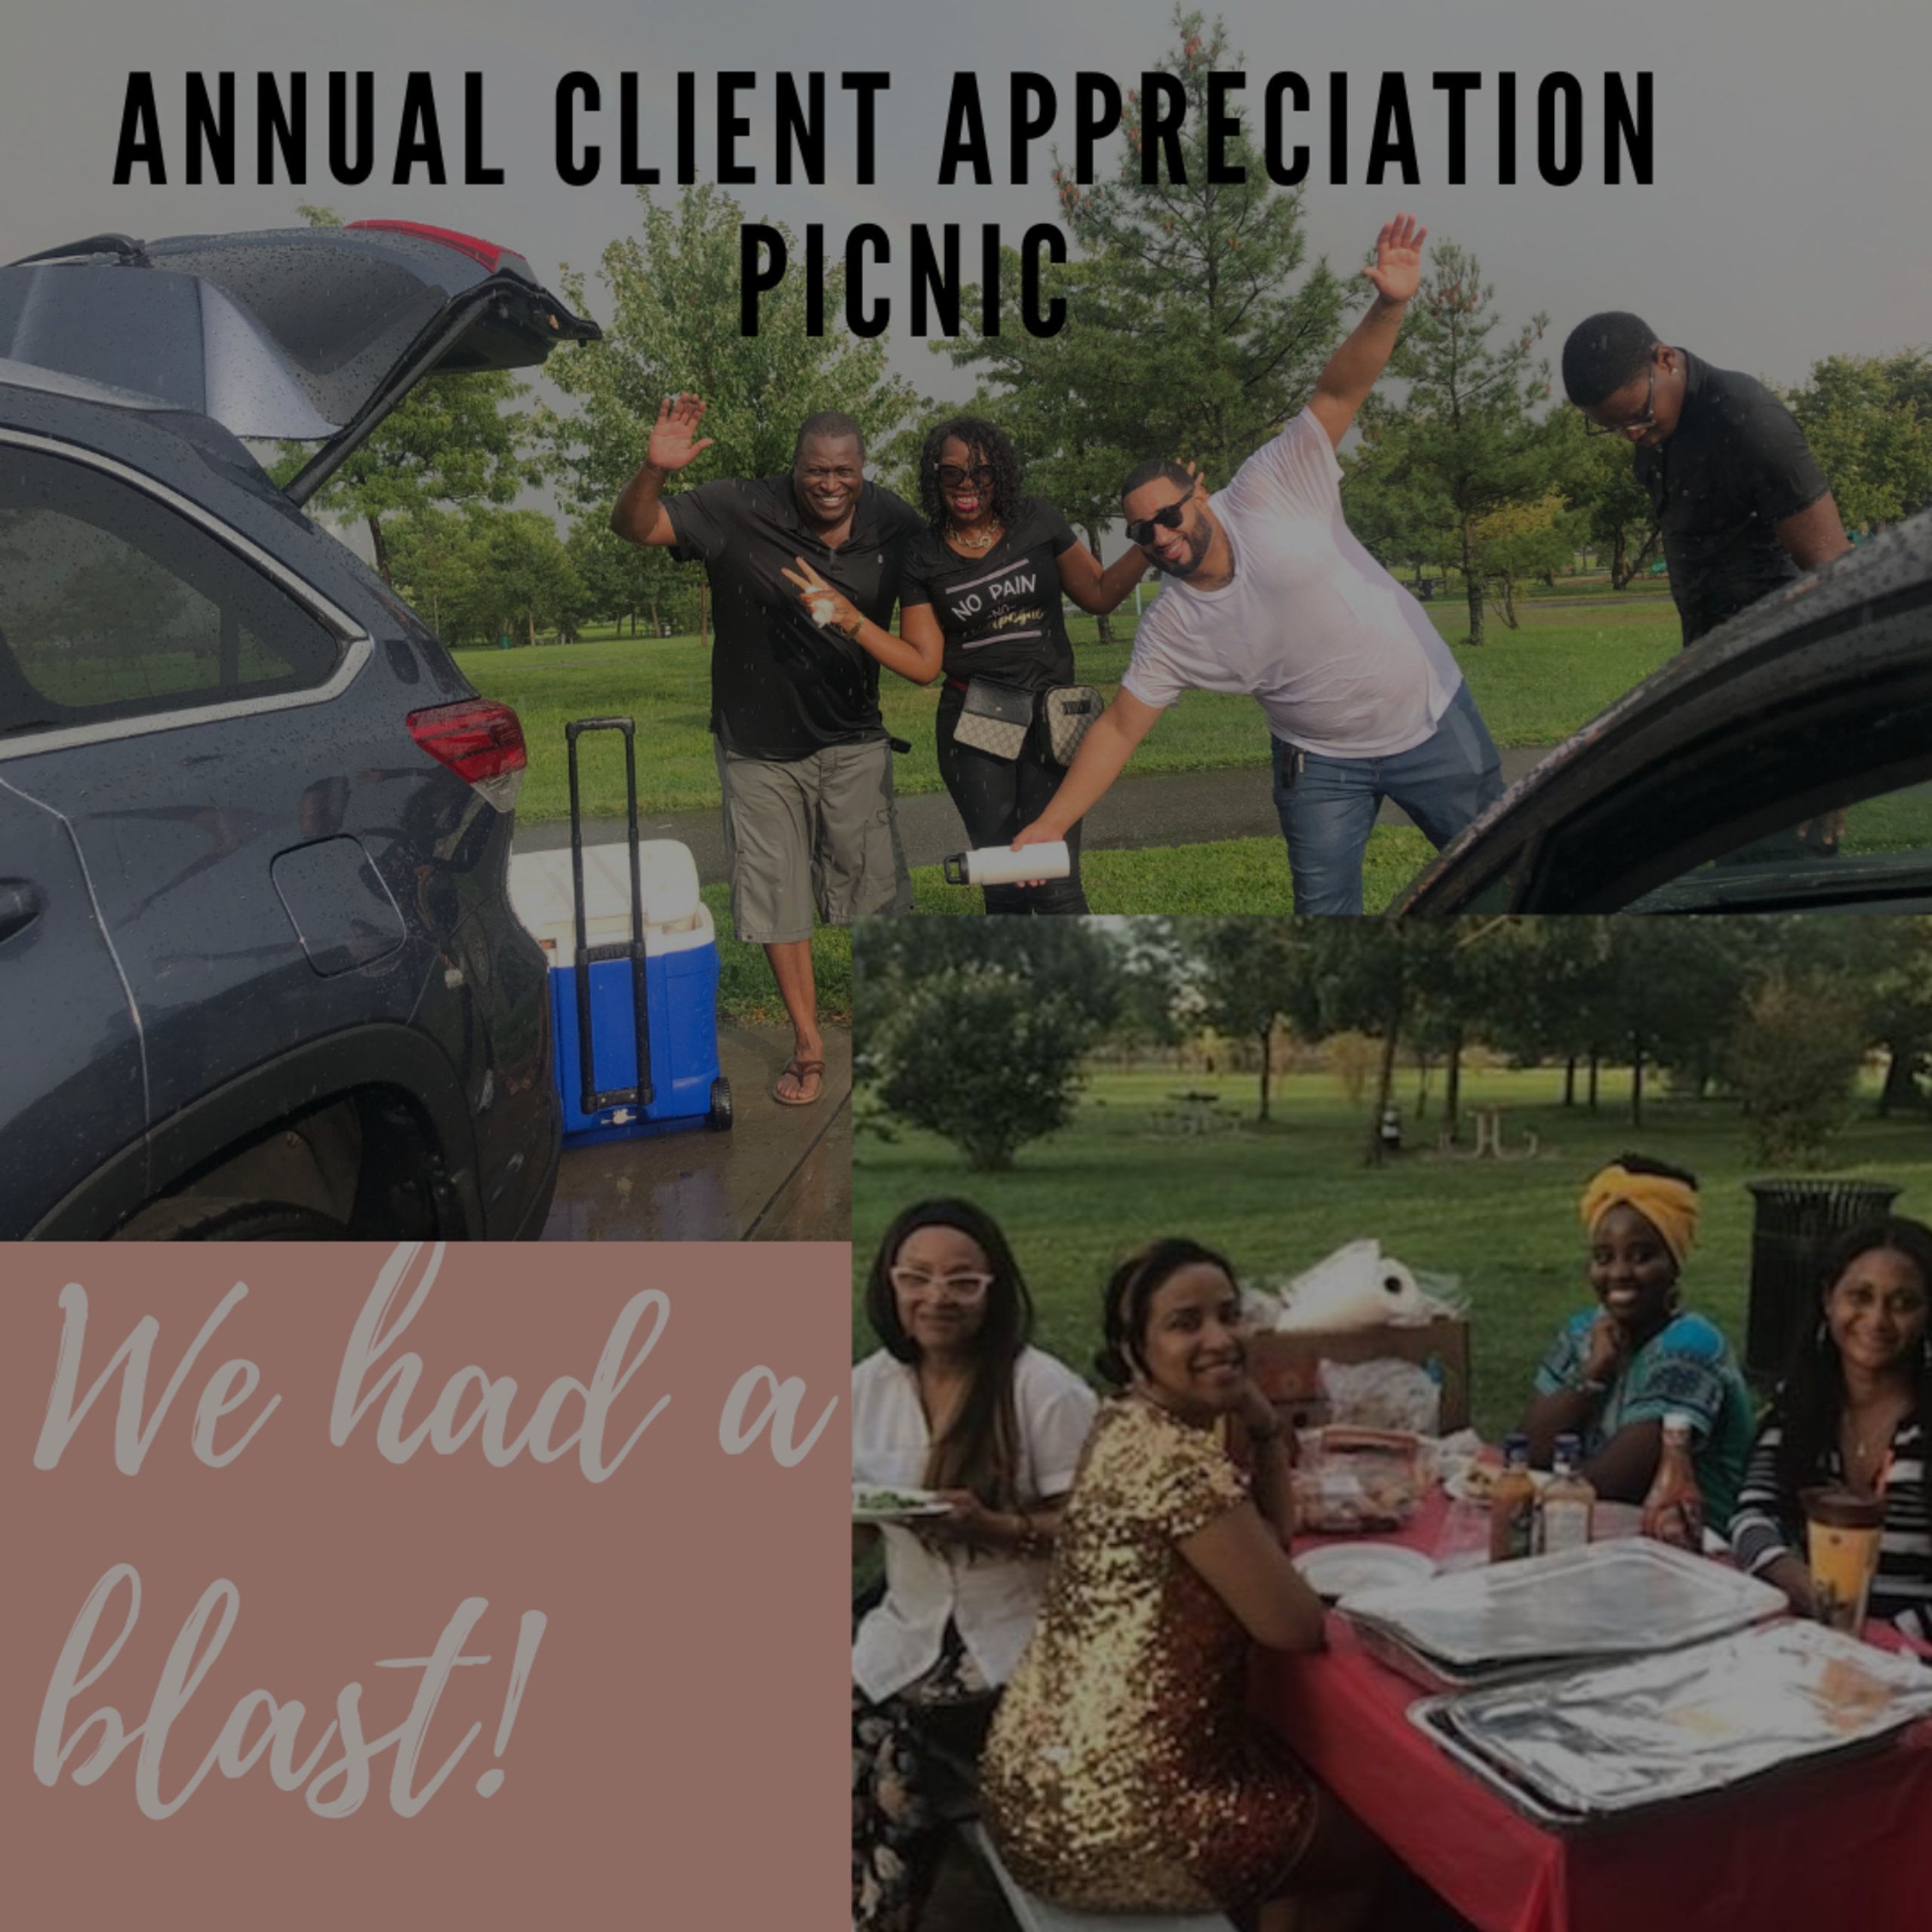 Our Annual Client Appreciation Picnic